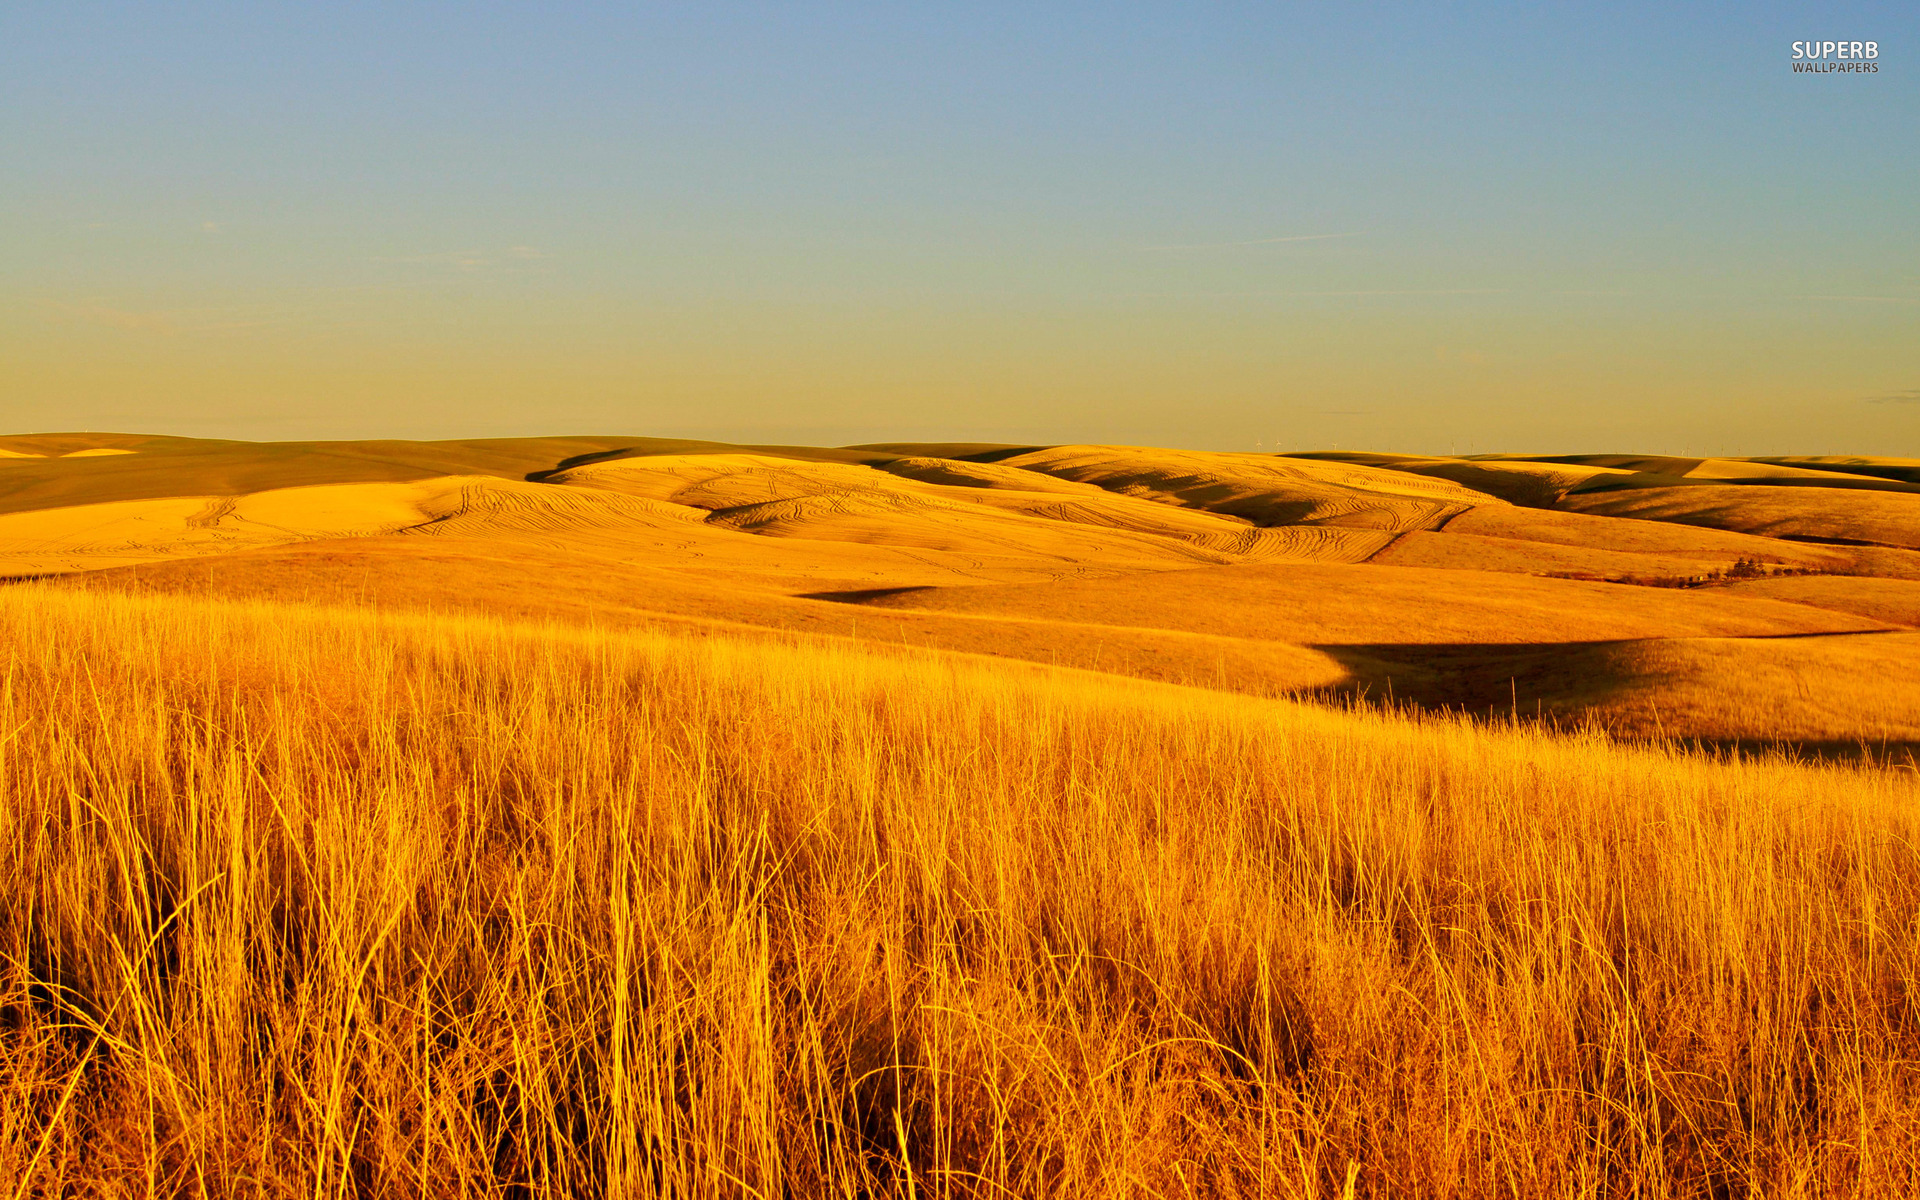 Fall Season Wallpapers For Iphone Dry Grass Fields Wallpapers Dry Grass Fields Stock Photos